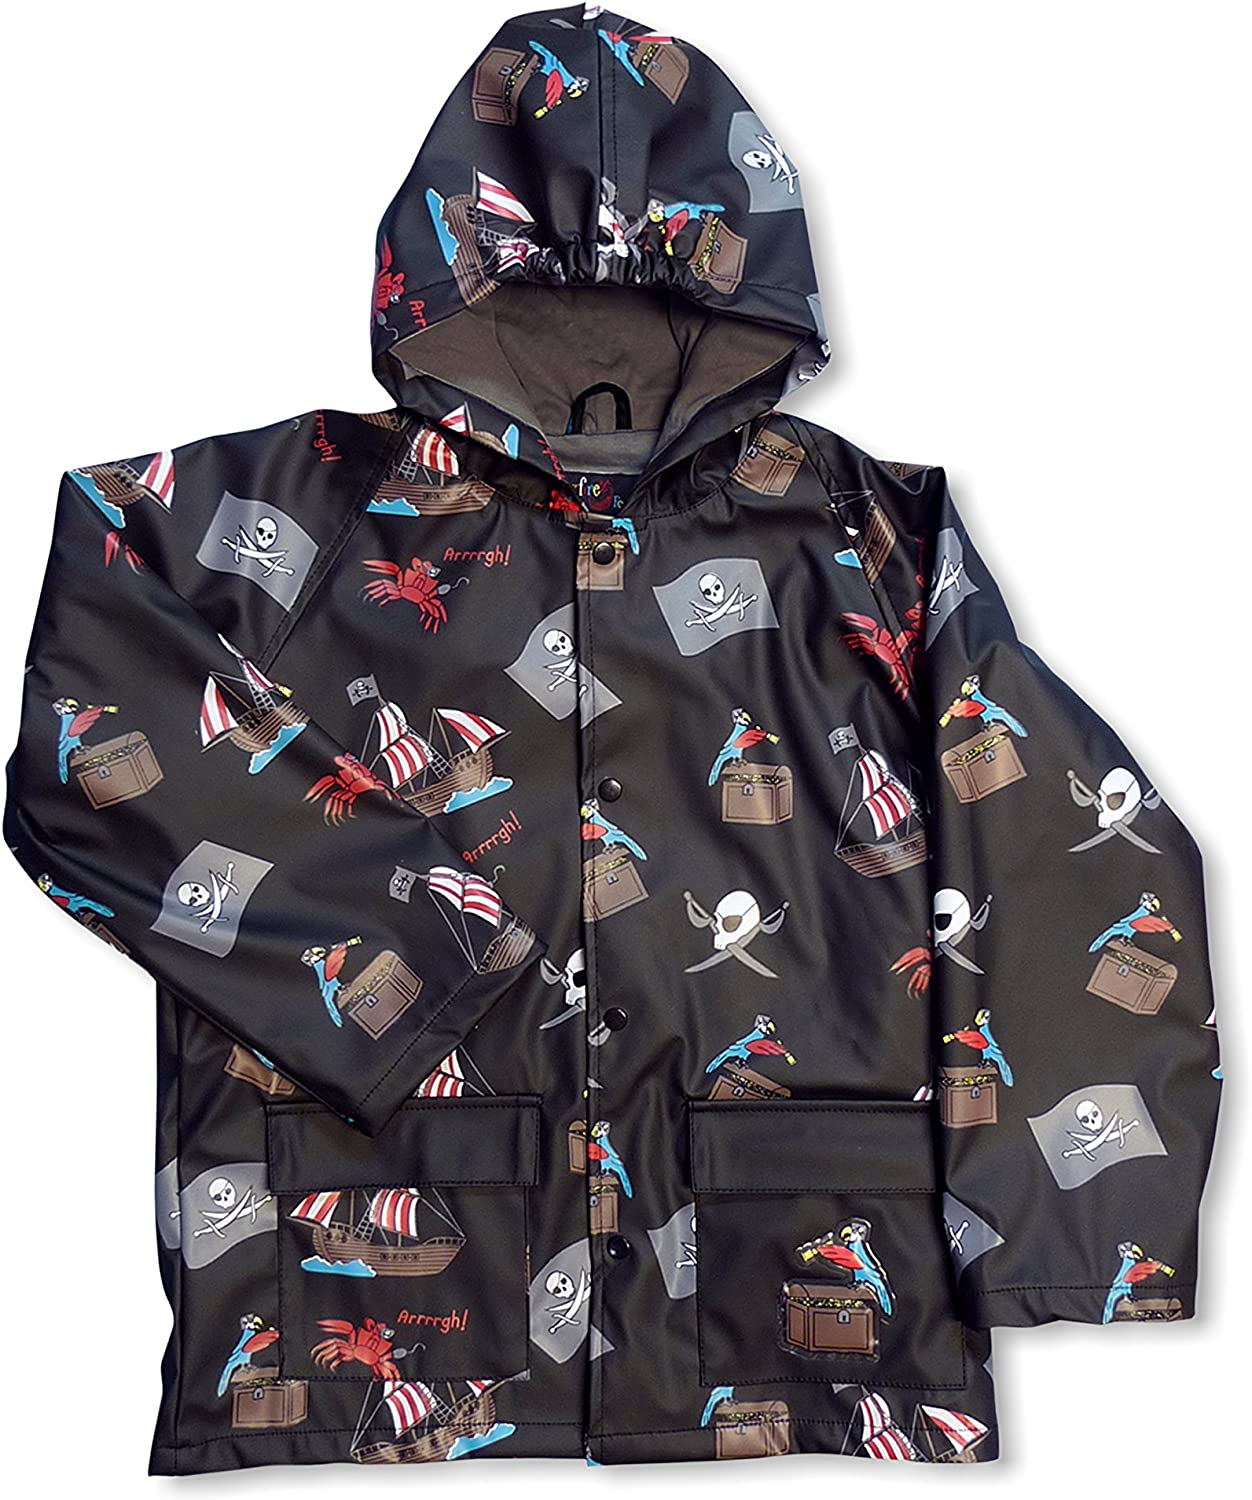 It is very popular Foxfire For Kids Max 71% OFF Boys Raincoat Theme Pirate Black